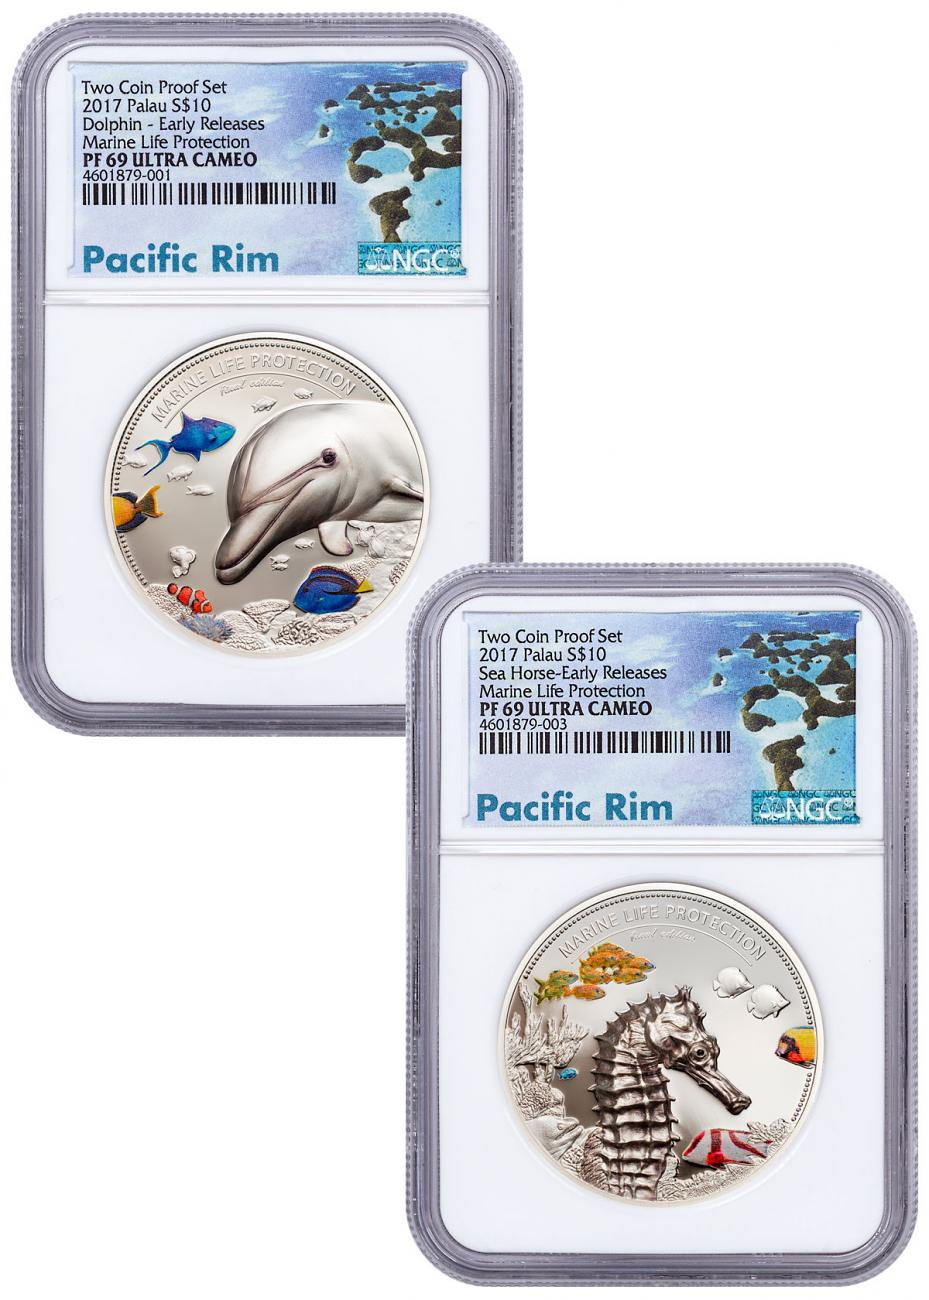 2-Coin Set - 2017 Palau Marine Life Protection - Seahorse and Dolphin High Relief Piedfort 1 oz Silver Colorized Proof $10 Coins NGC PF69 UC ER Exclusive Pacific Rim Label